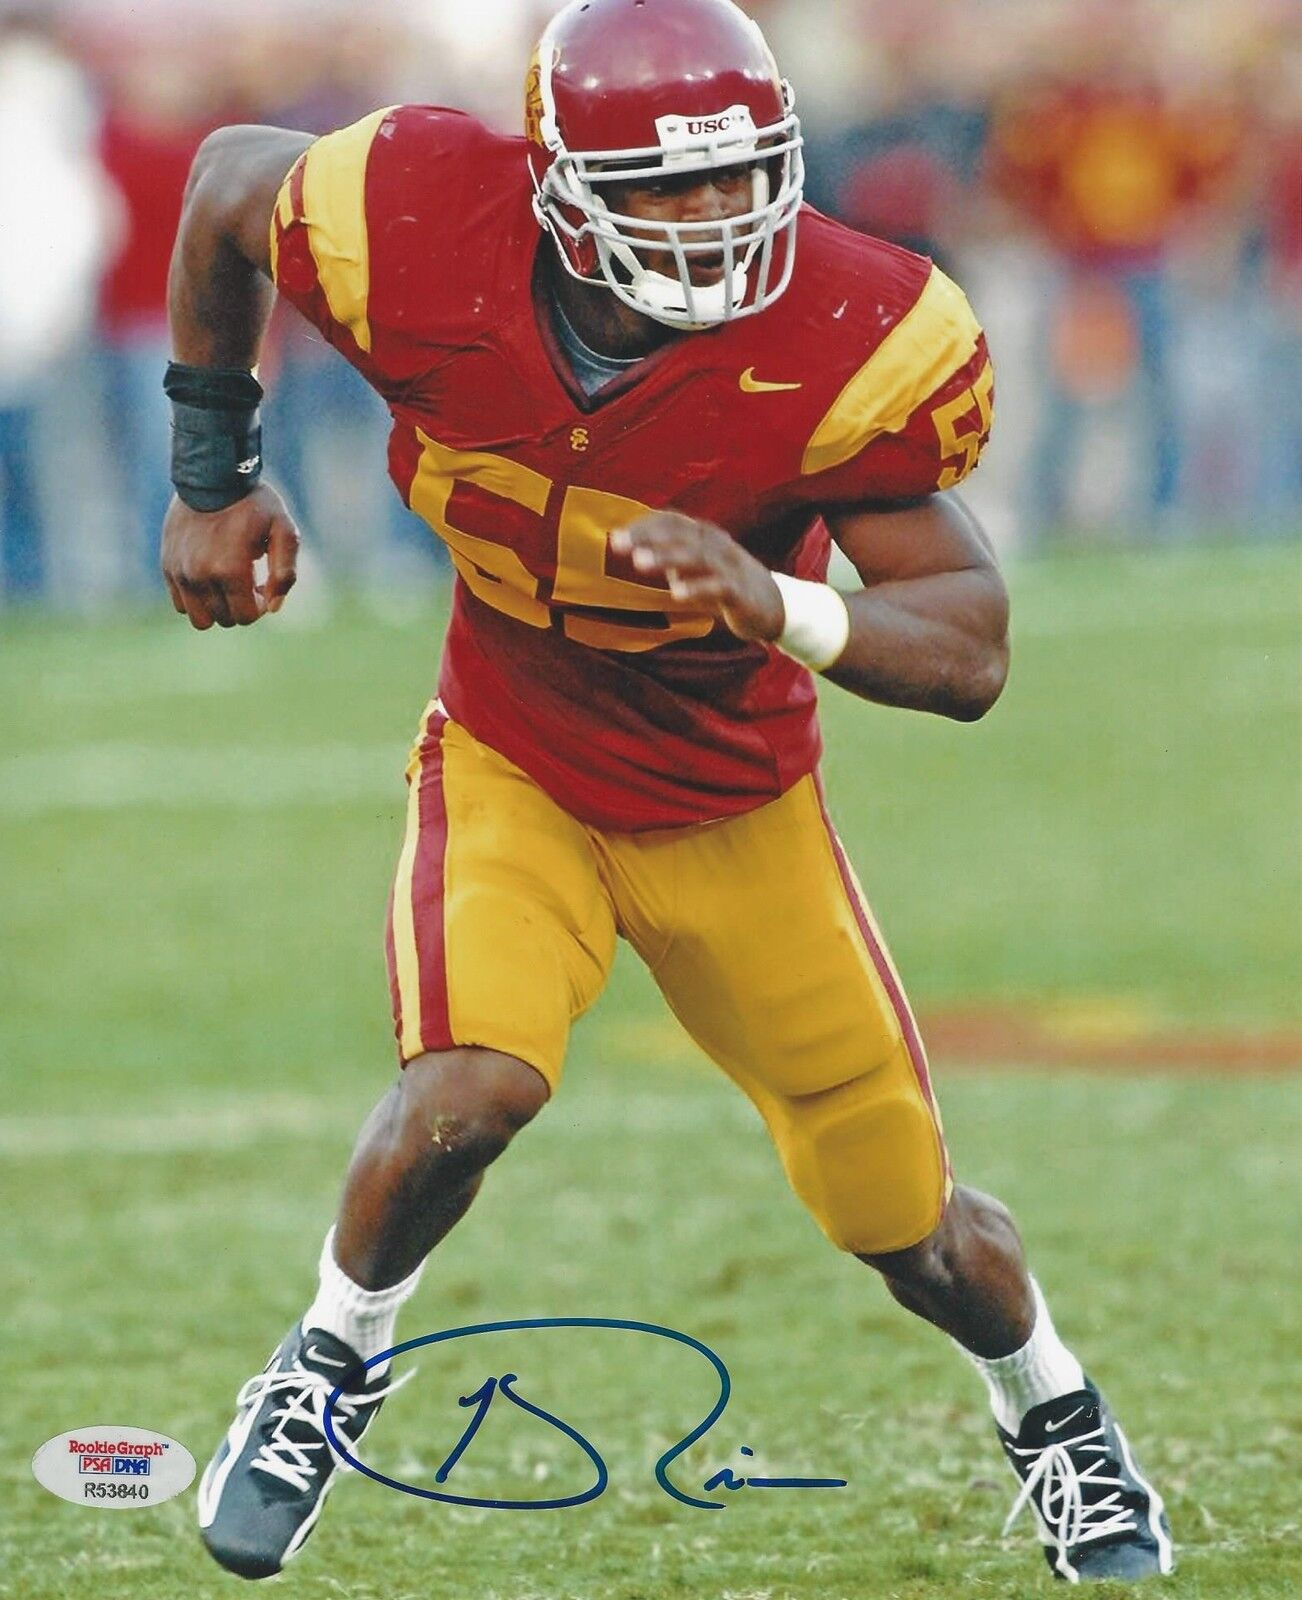 Keith Rivers Signed USC Trojans 8x10 Photo PSA/DNA # R53840